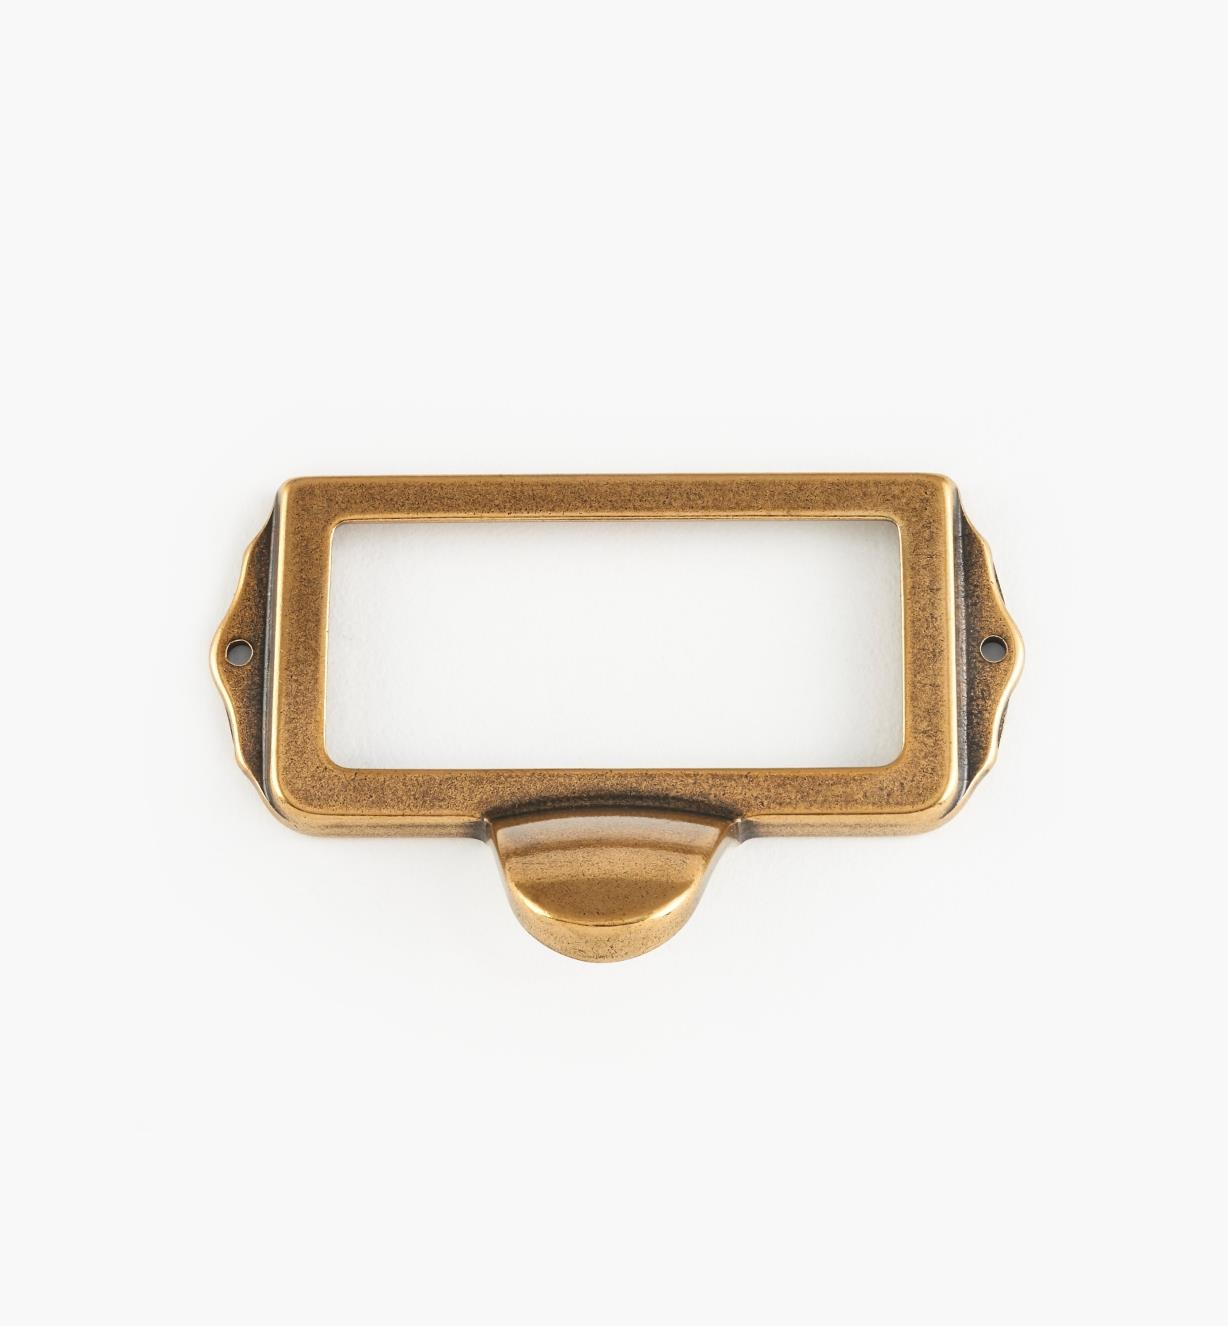 01A5752 - Burnished Bronze Card Frame/Pull